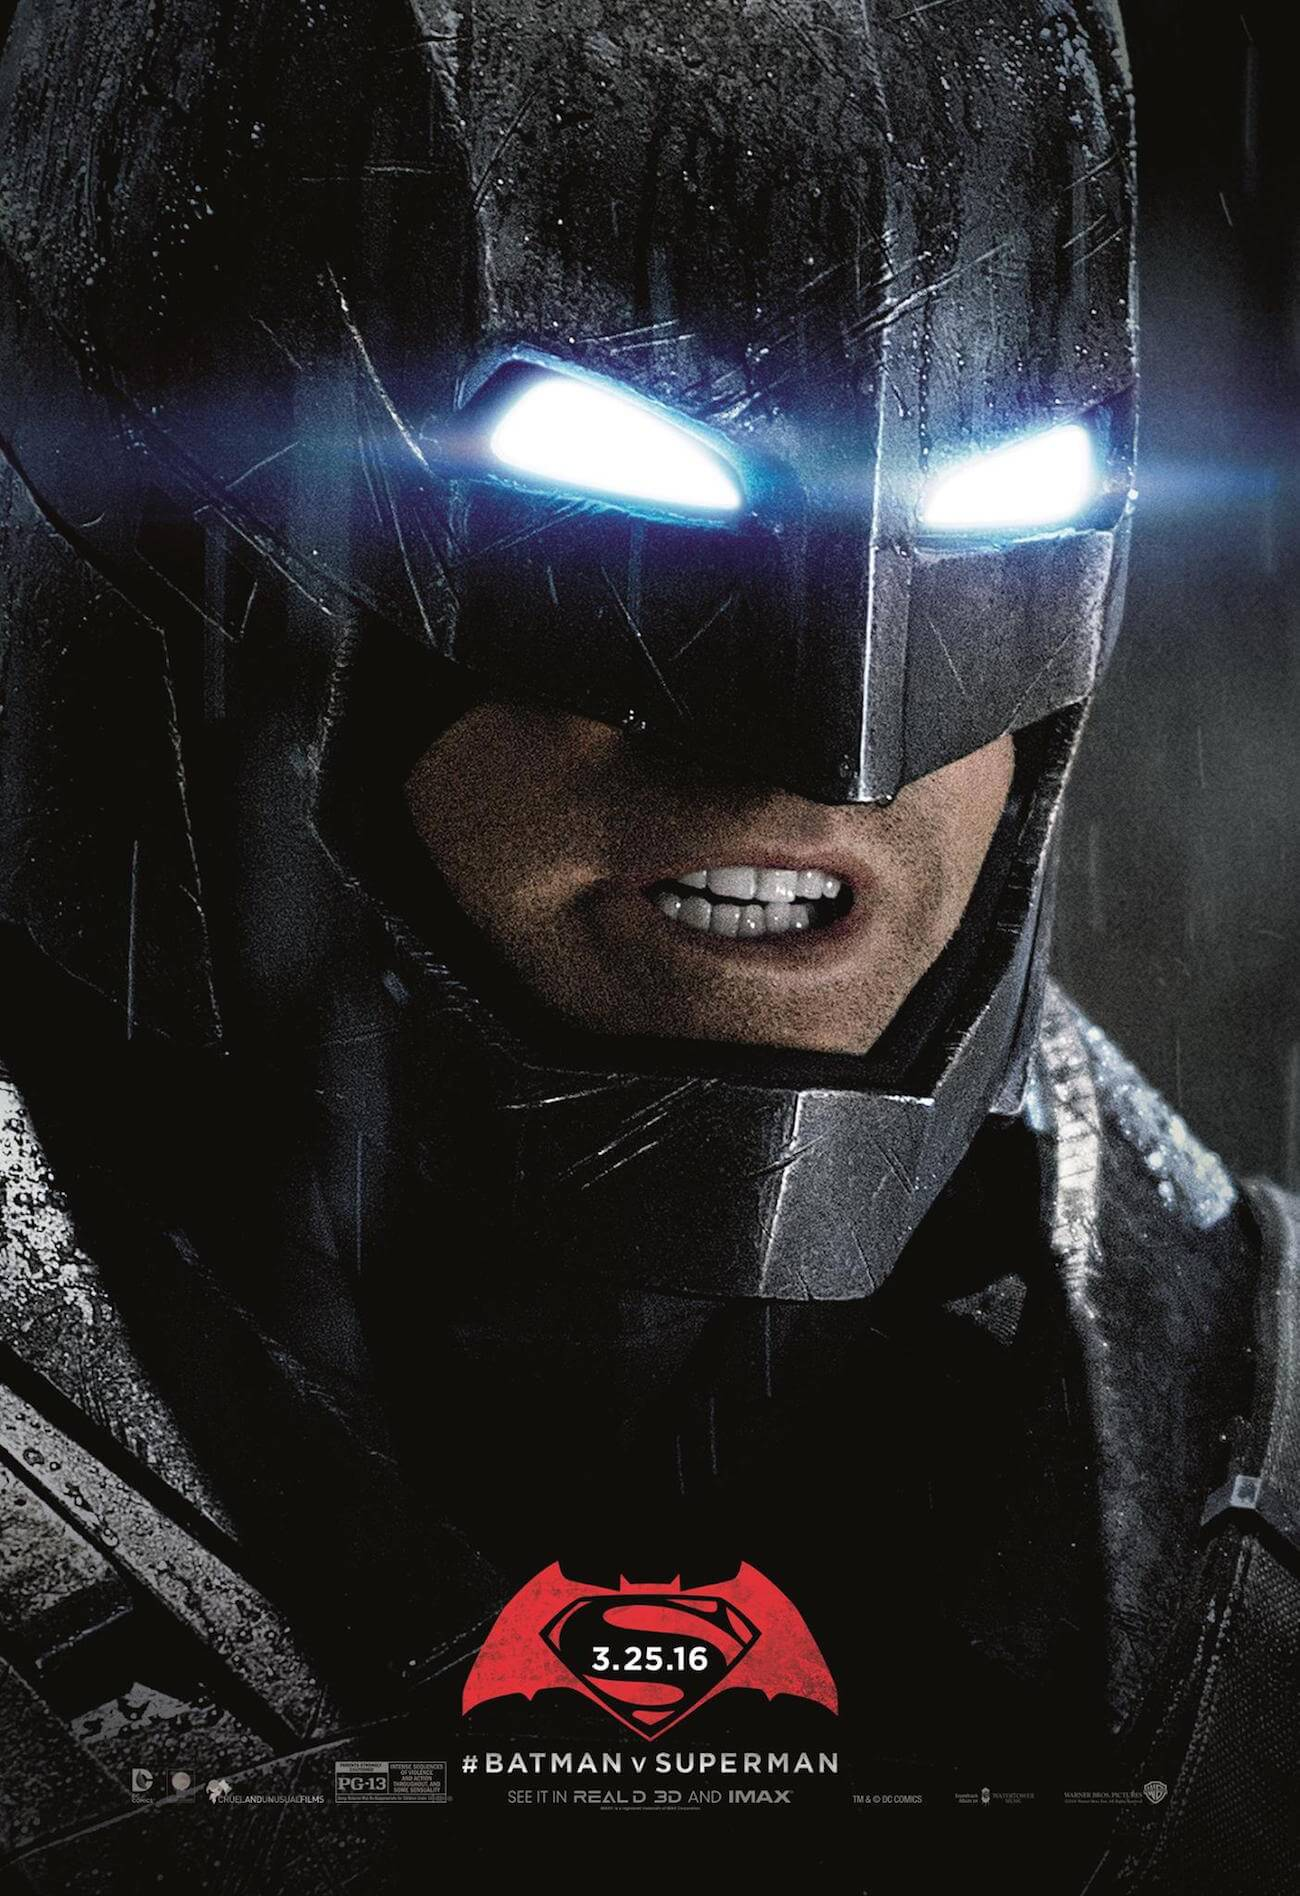 Bvs batman